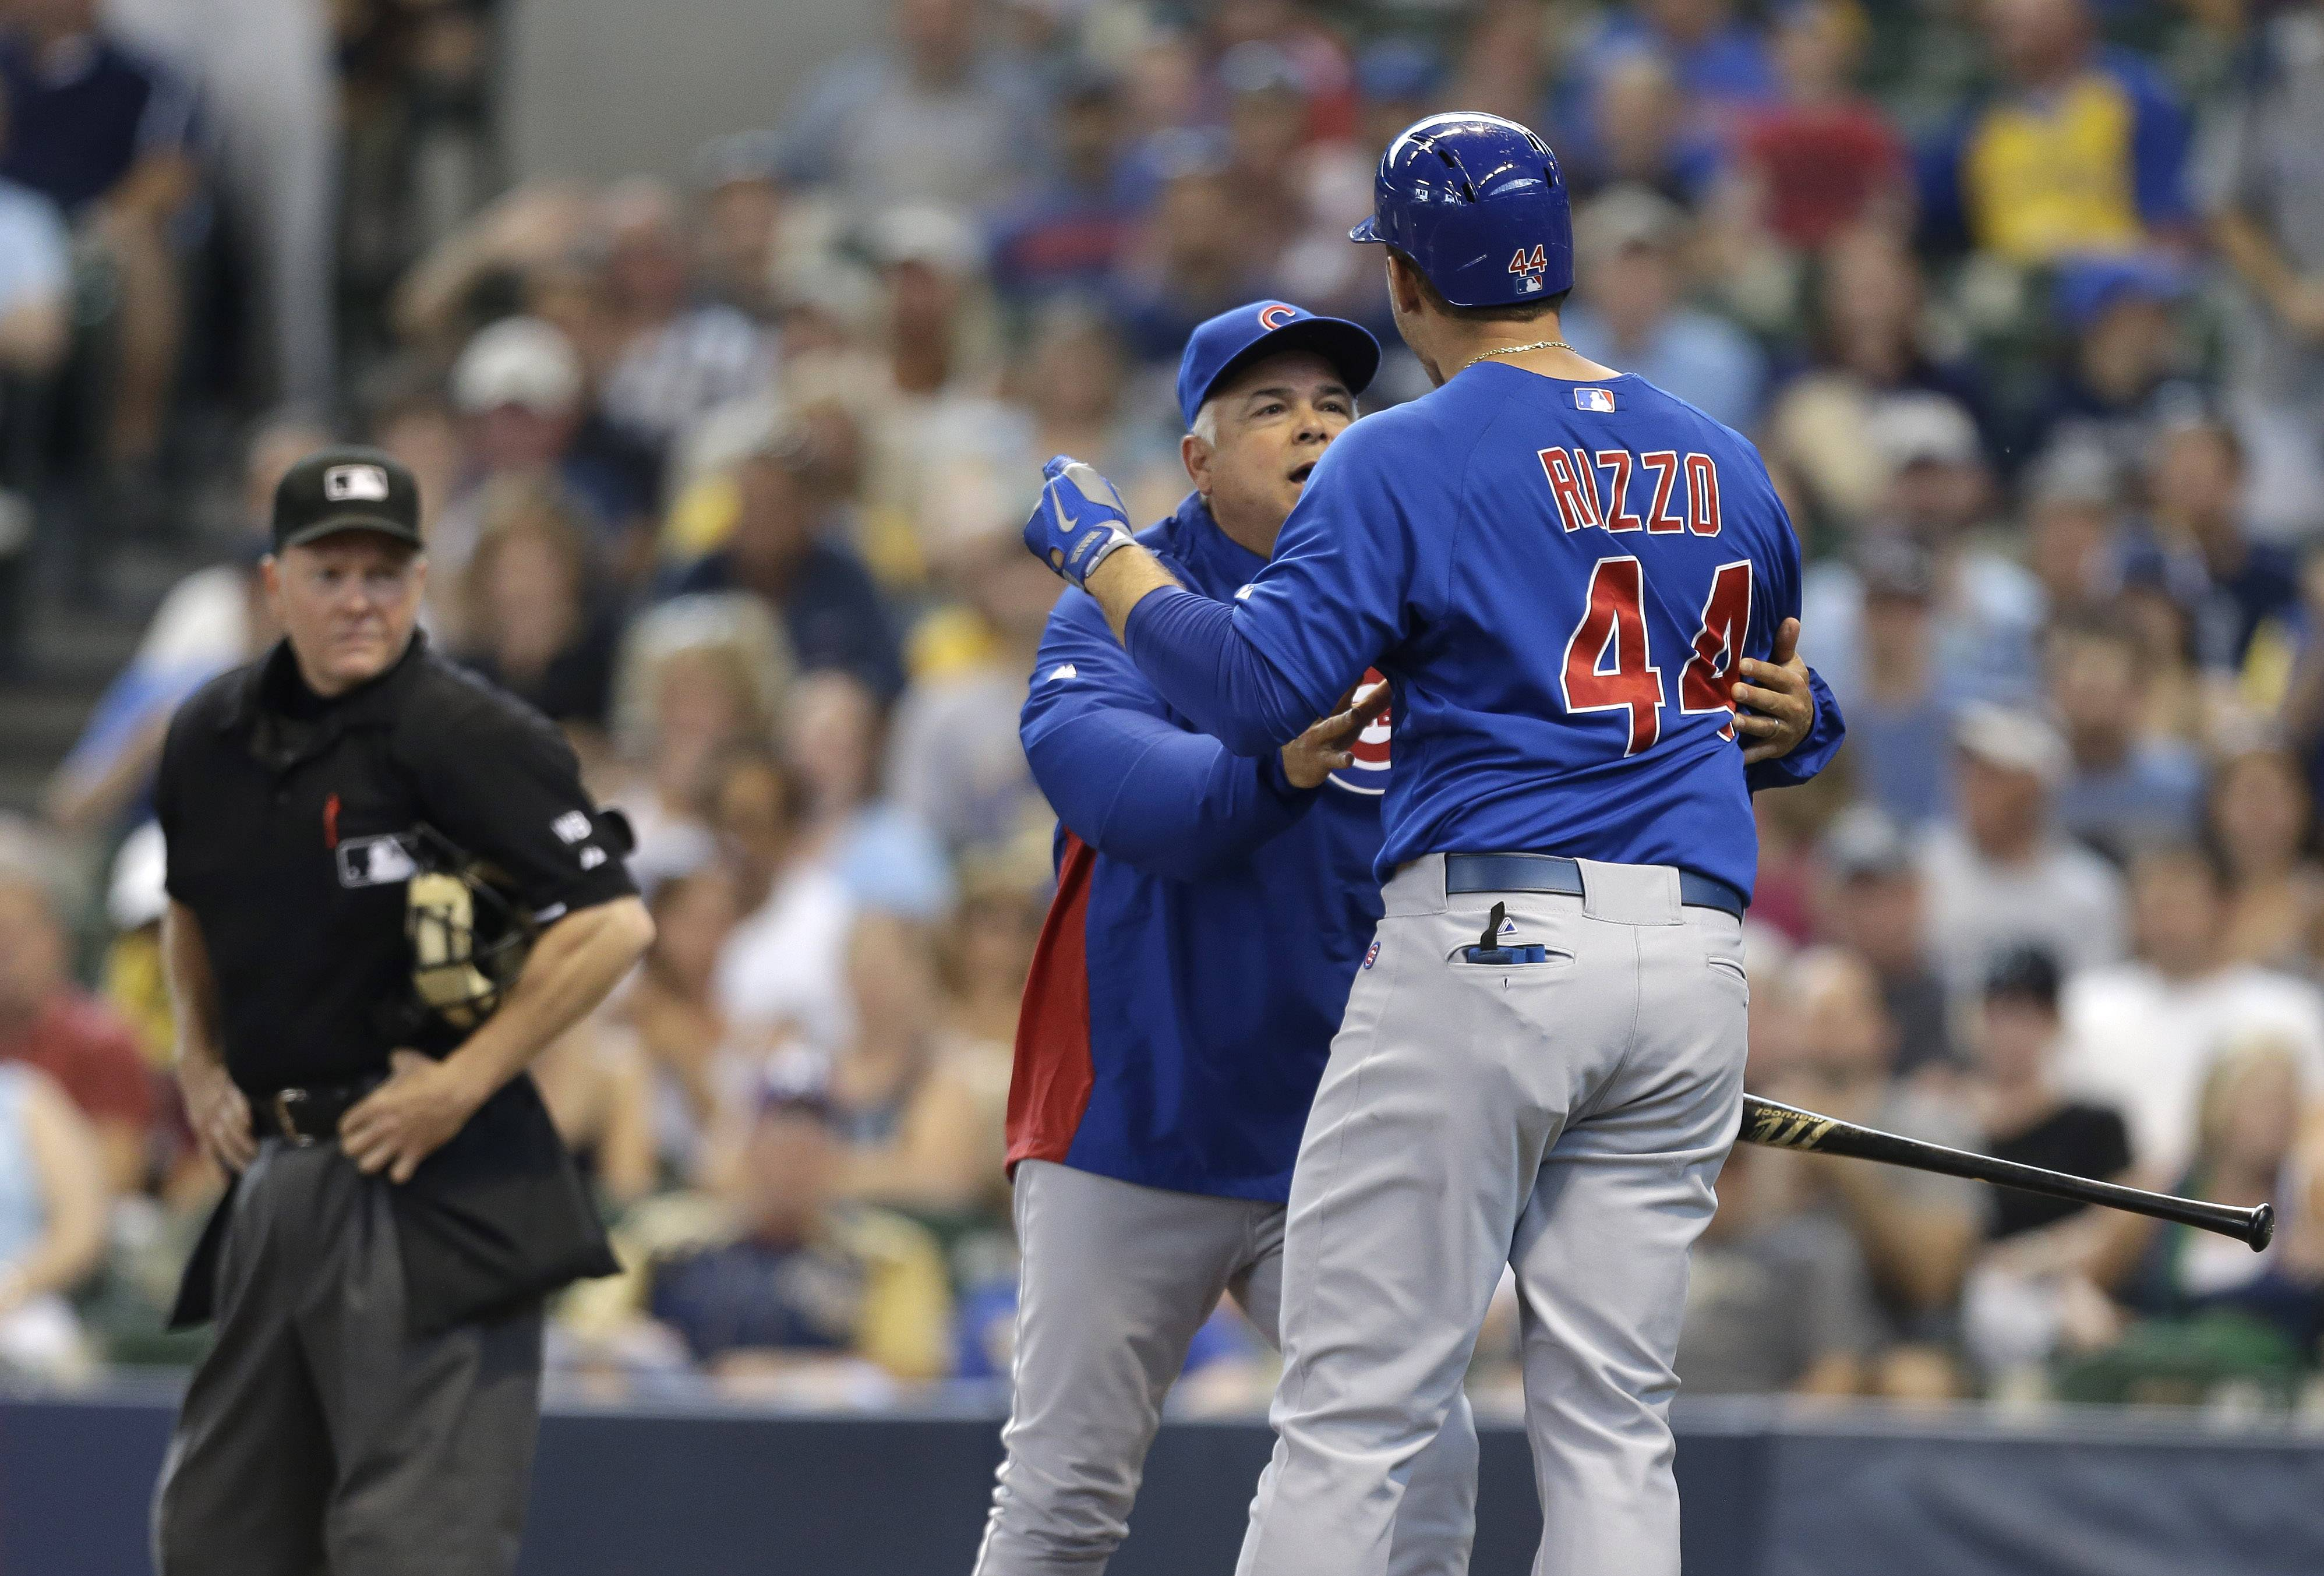 Cubs manger Rick Renteria, second from right, tries to restrain Anthony Rizzo (44) who argues with home plate umpire Jerry Meals in the fourth inning of a baseball game against the Milwaukee Brewers, Sunday, June 1, 2014, in Milwaukee. Rizzo was ejected from the game.